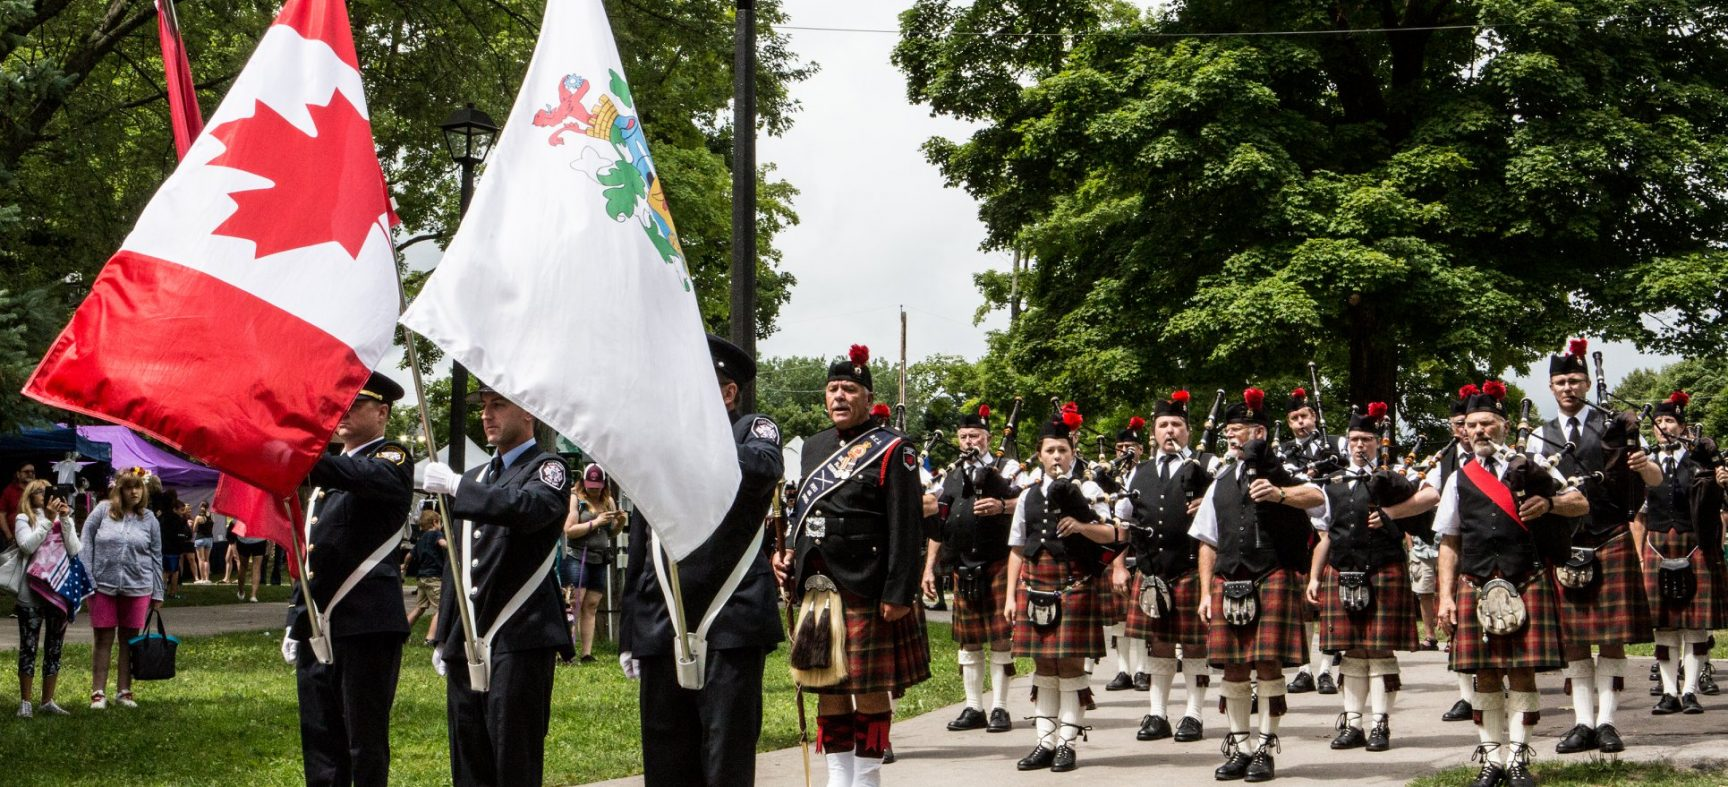 Uxbridge Scottish Festival 2018